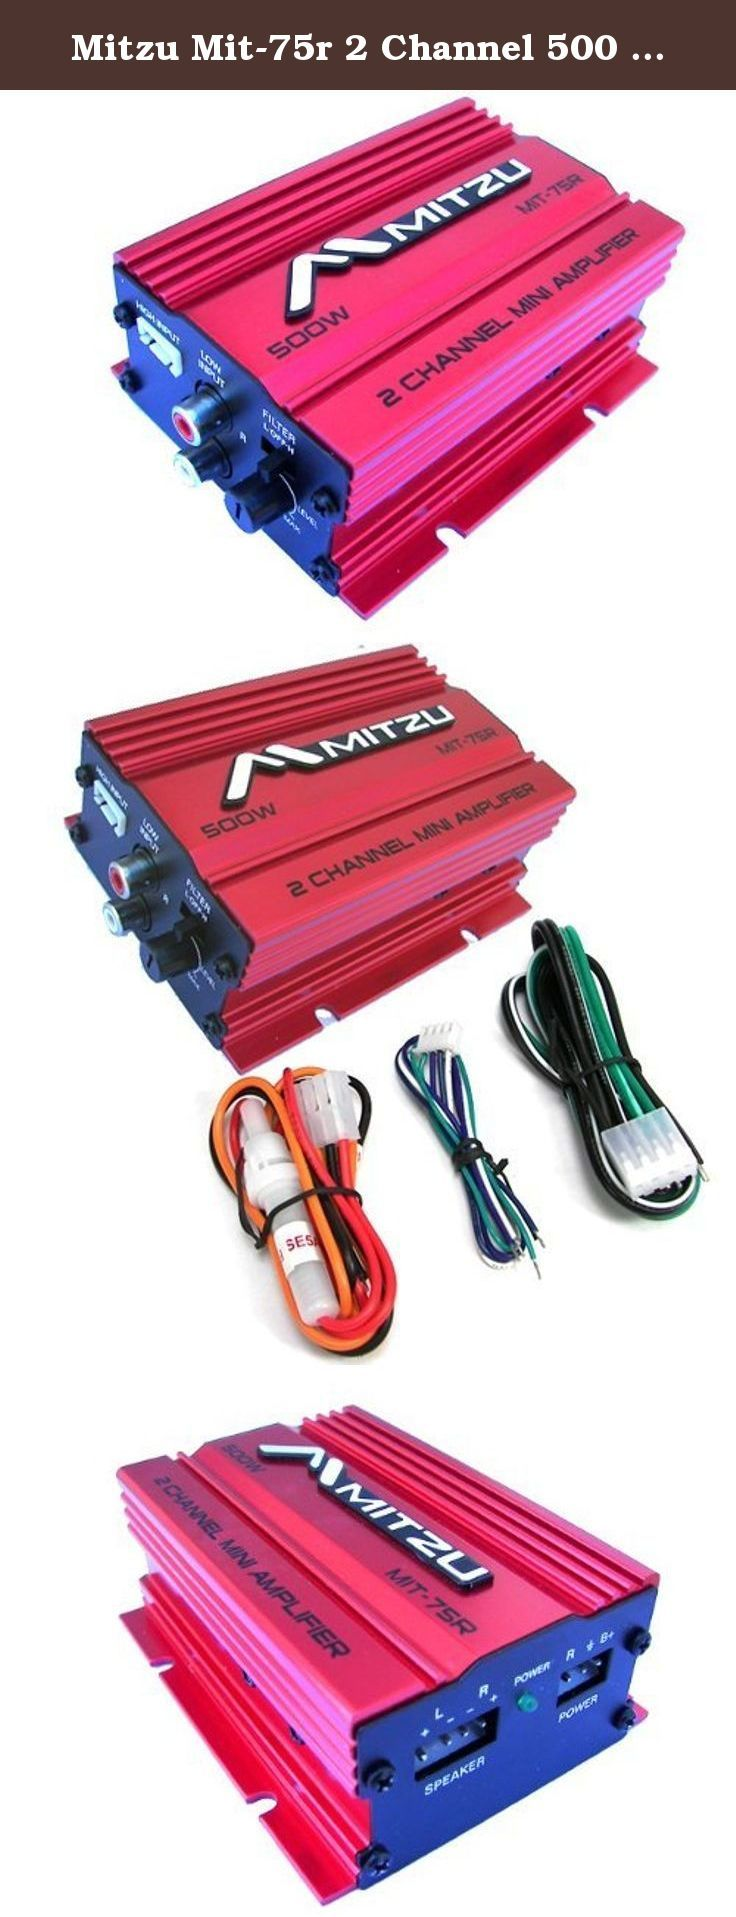 Mitzu Mit 75r 2 Channel 500 Watt Car And Motorcycle Audio Amplifier Wiring The Watts Is A Small That Able To